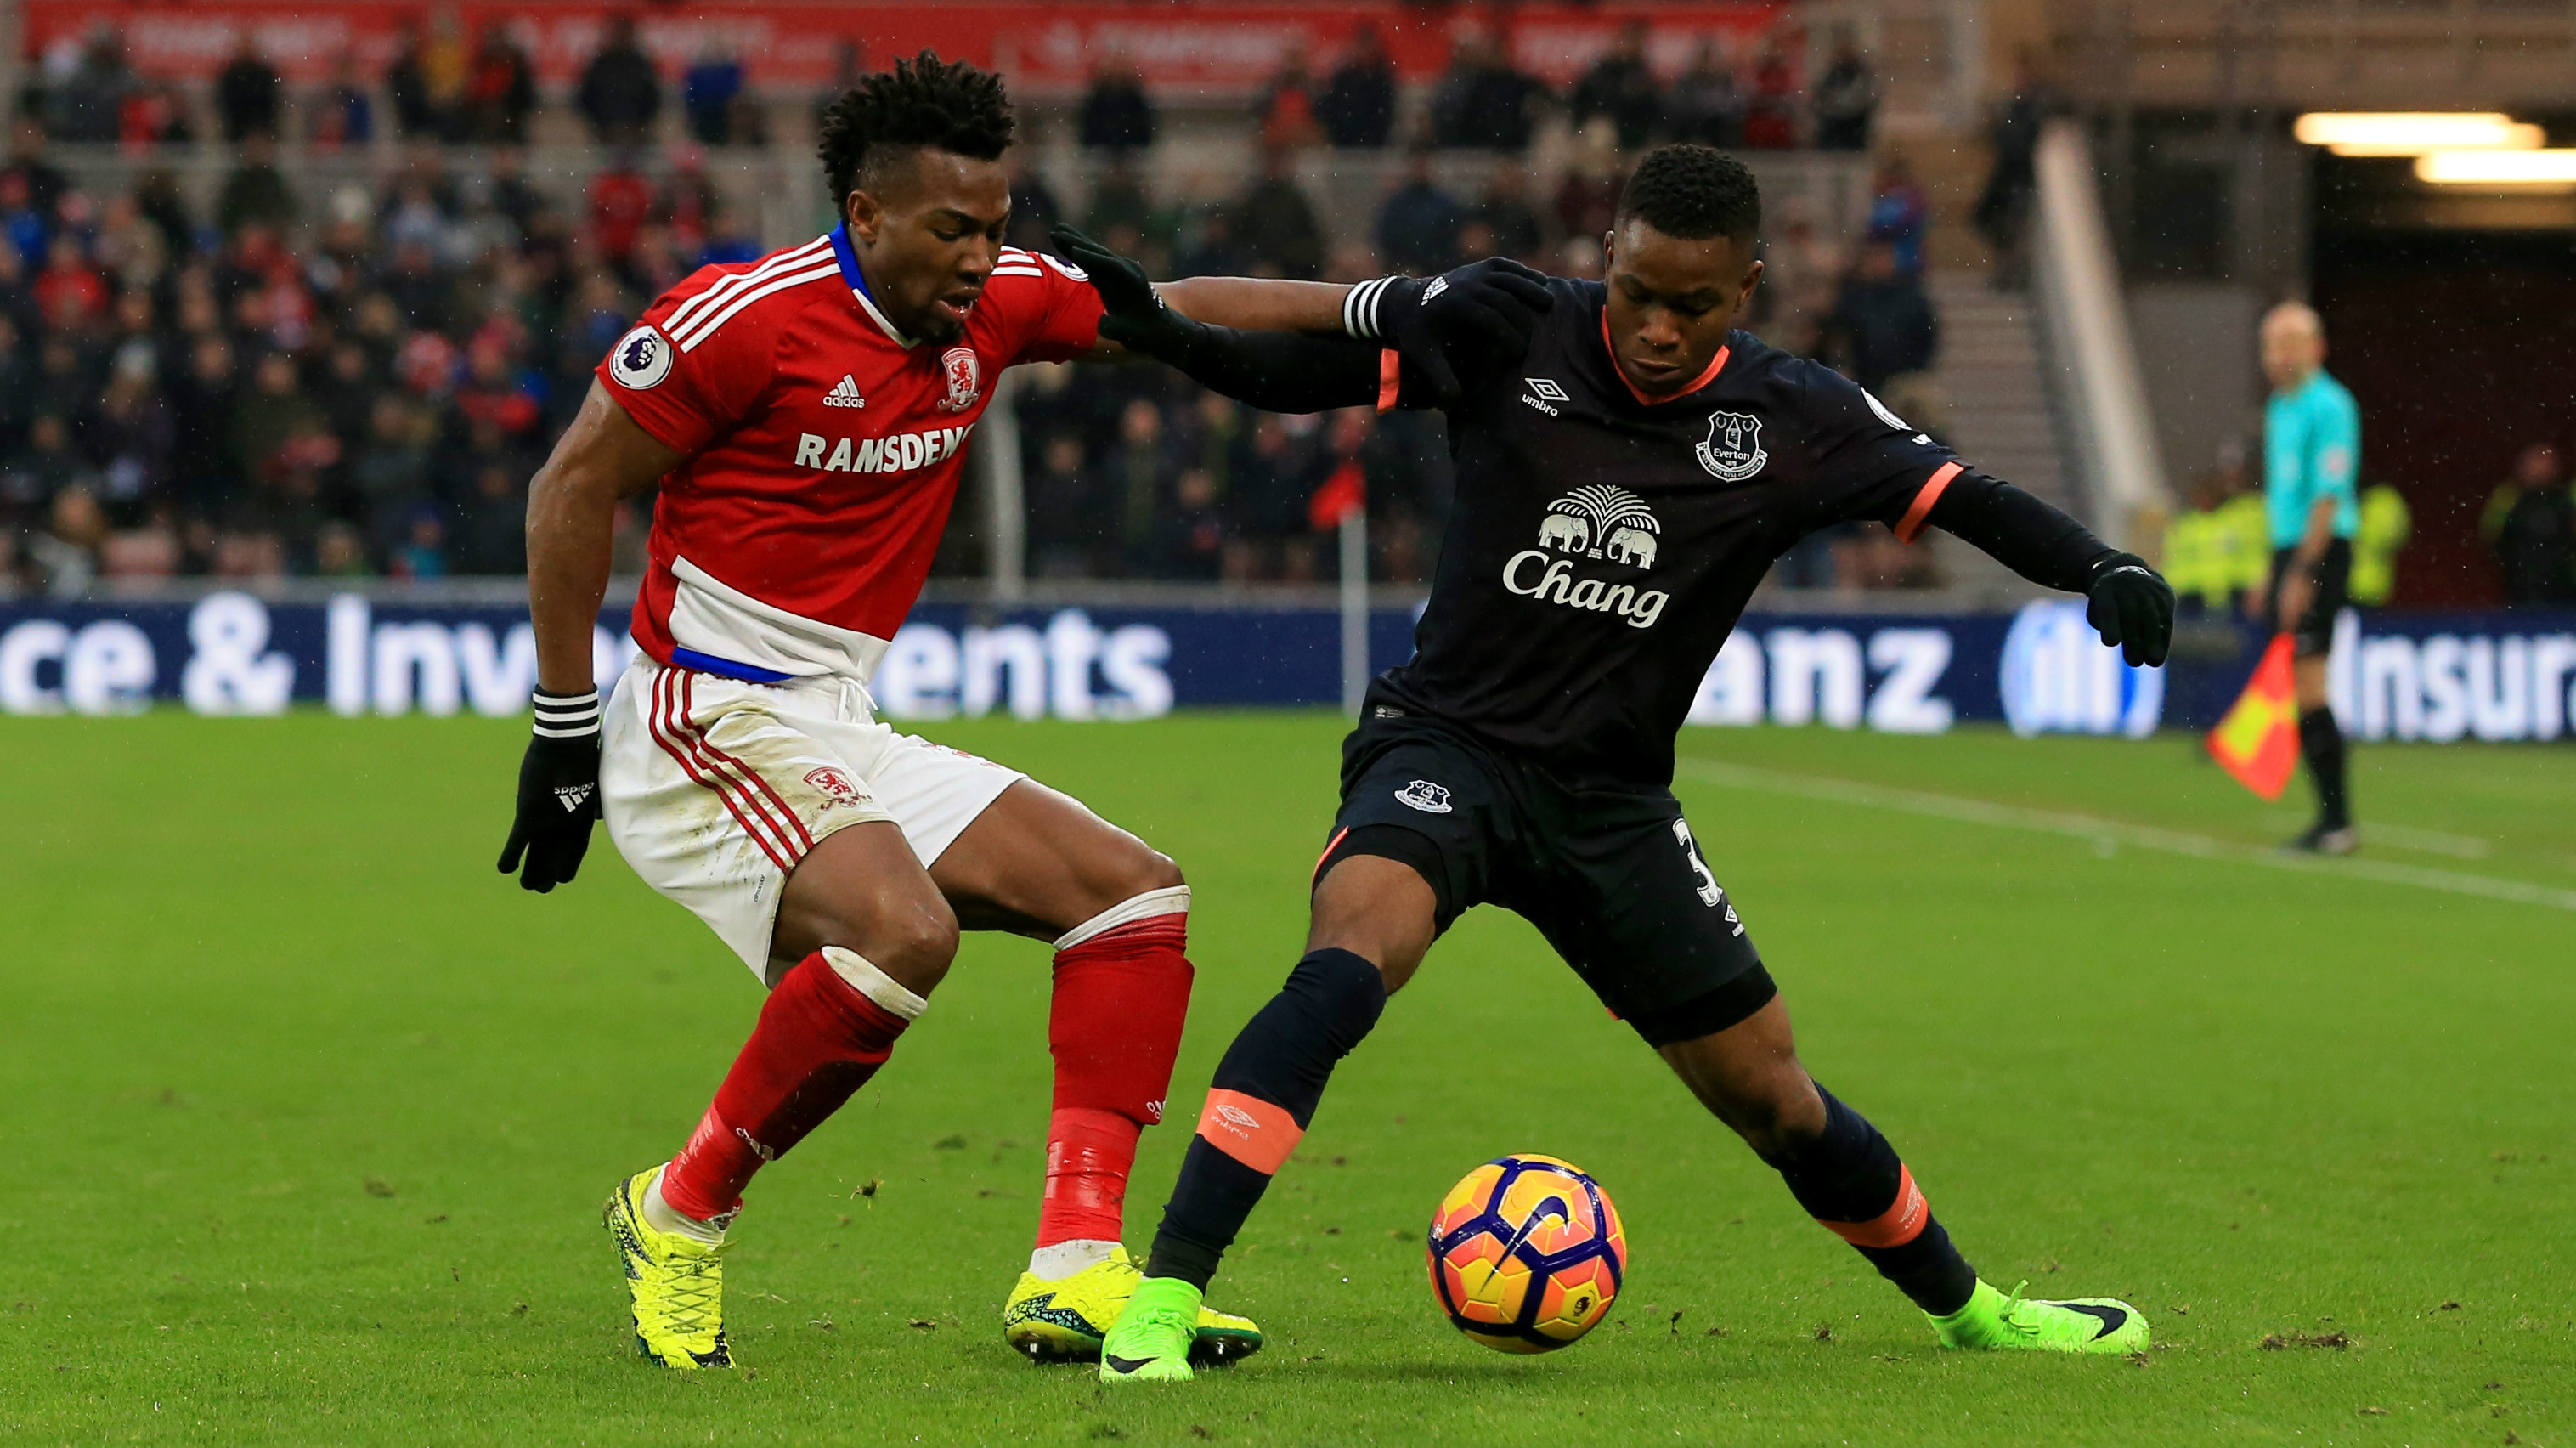 Ademola Lookman Adama Traore Middlesbrough Everton Premier League 11022017